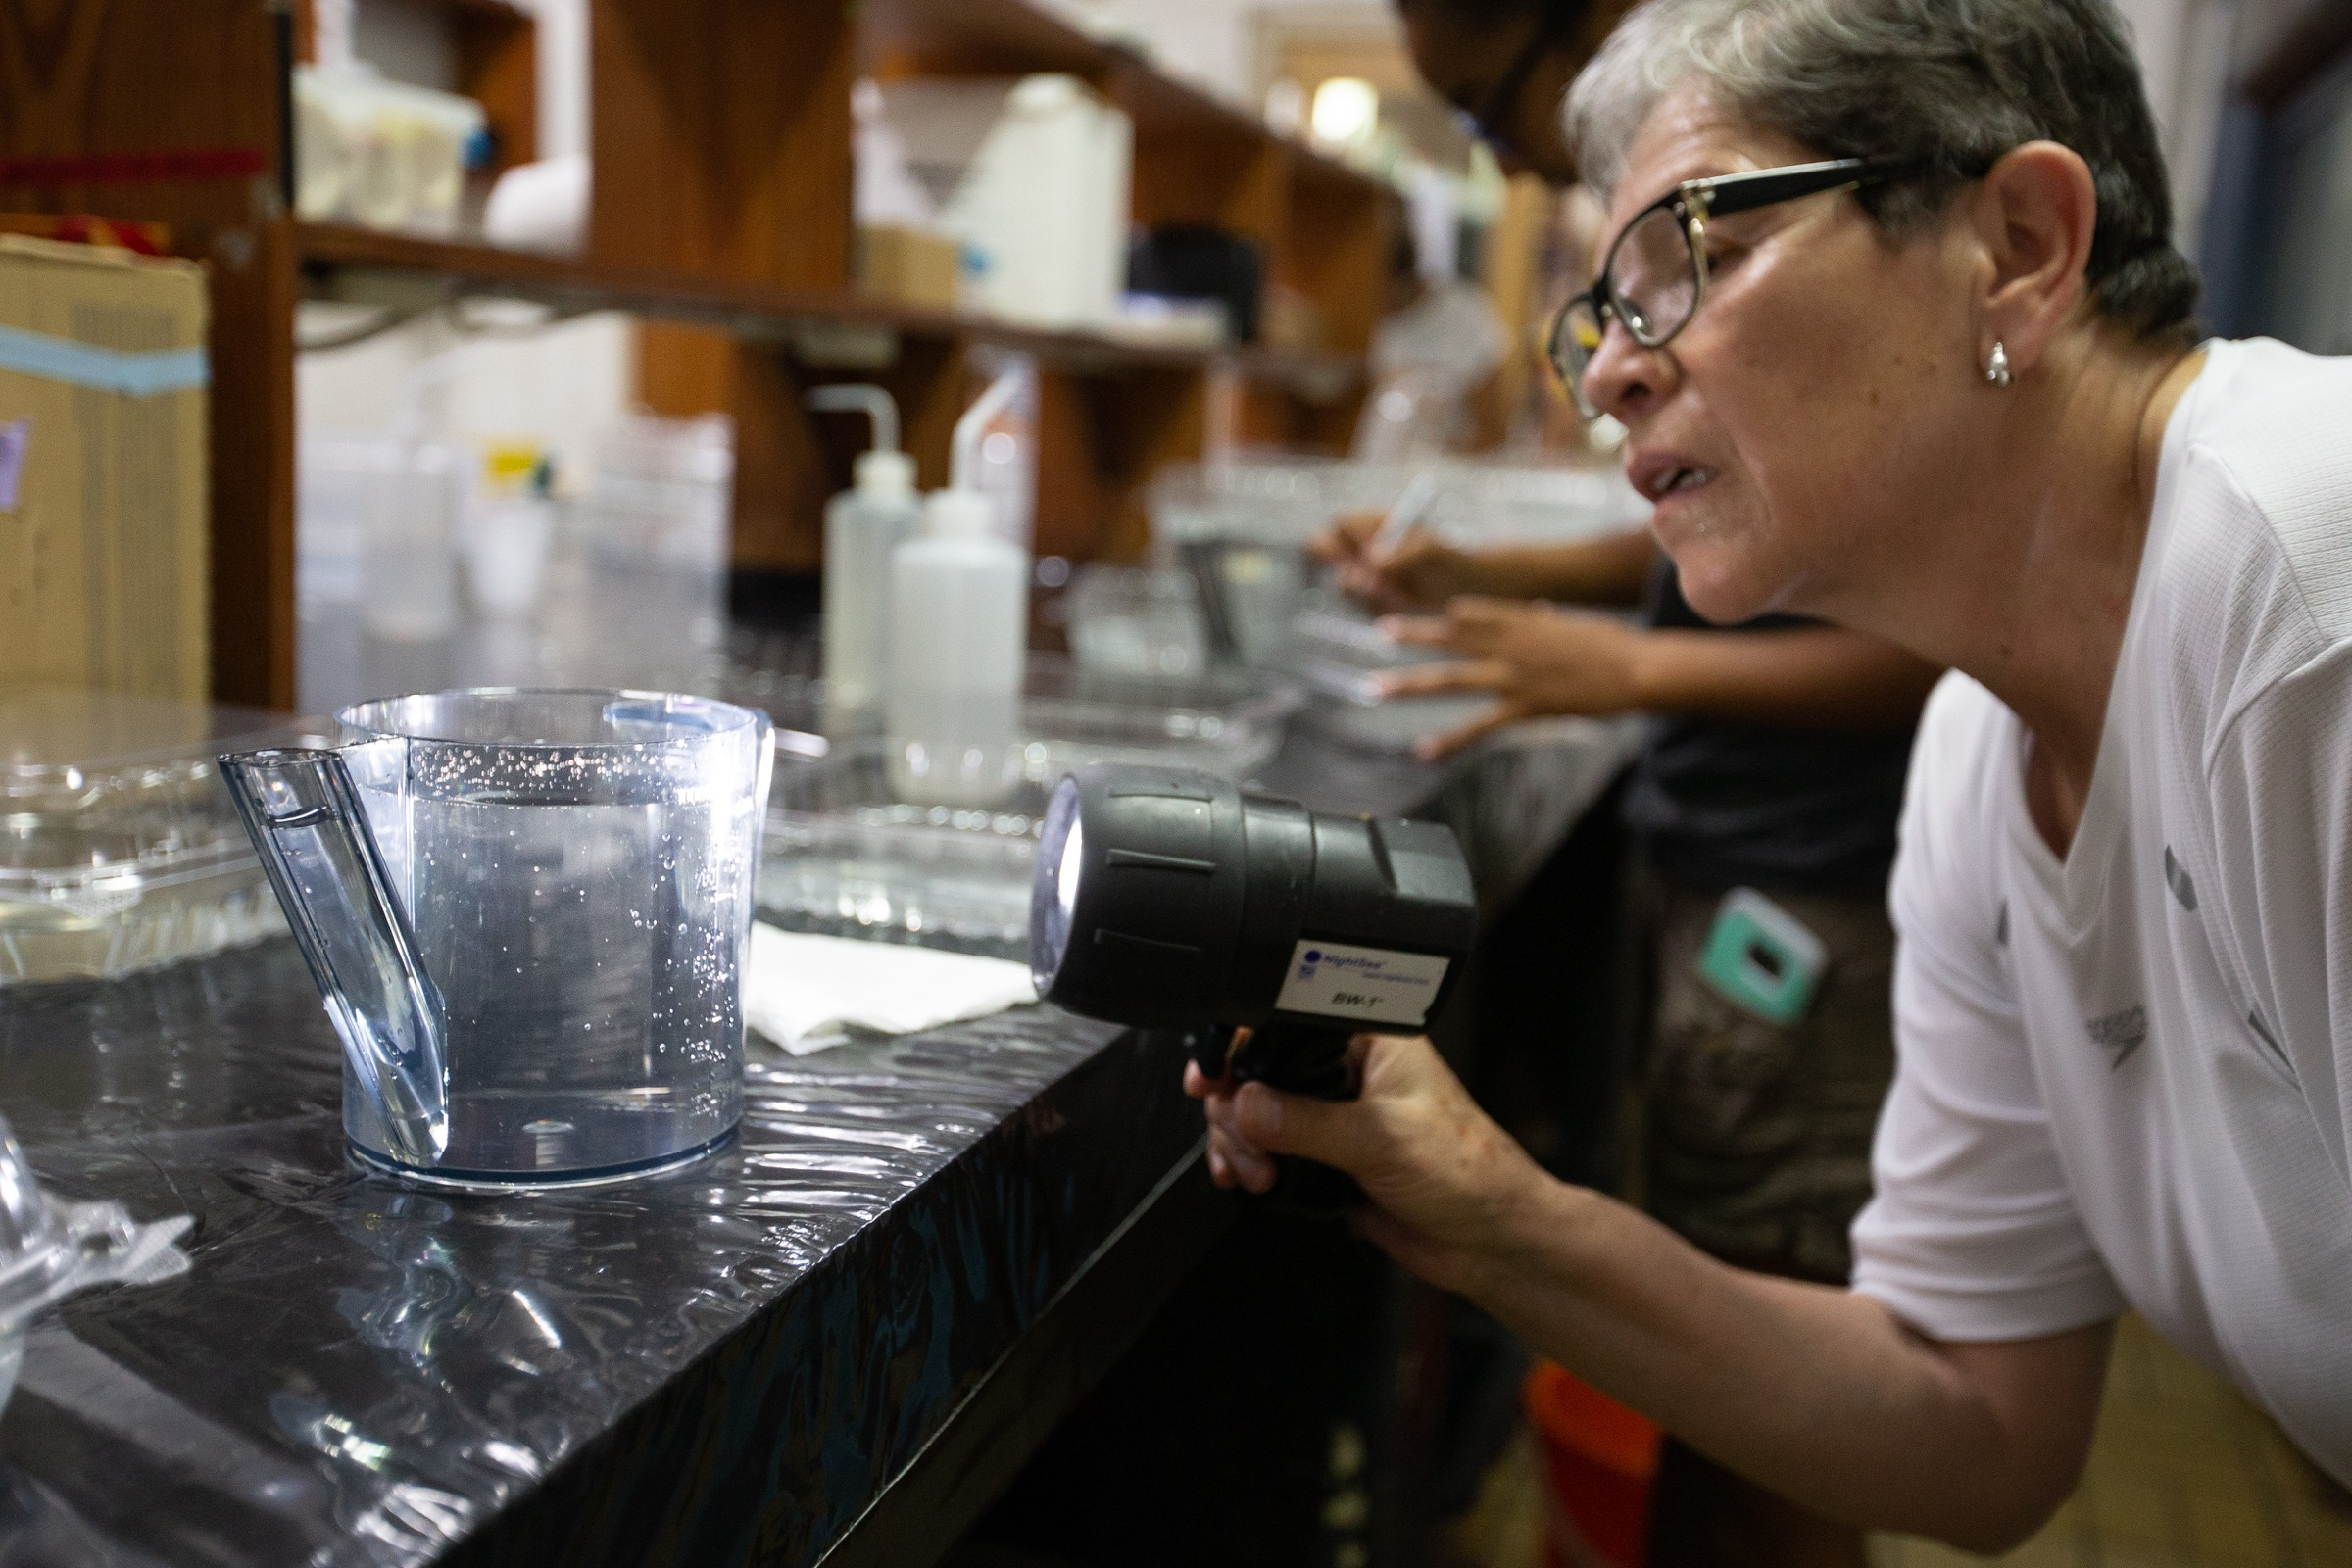 Elvira Alvarado, a professor at the University of Bogotá, inspects a batch of fertilized coral eggs at the CARMABI Marine Research Station laboratory.